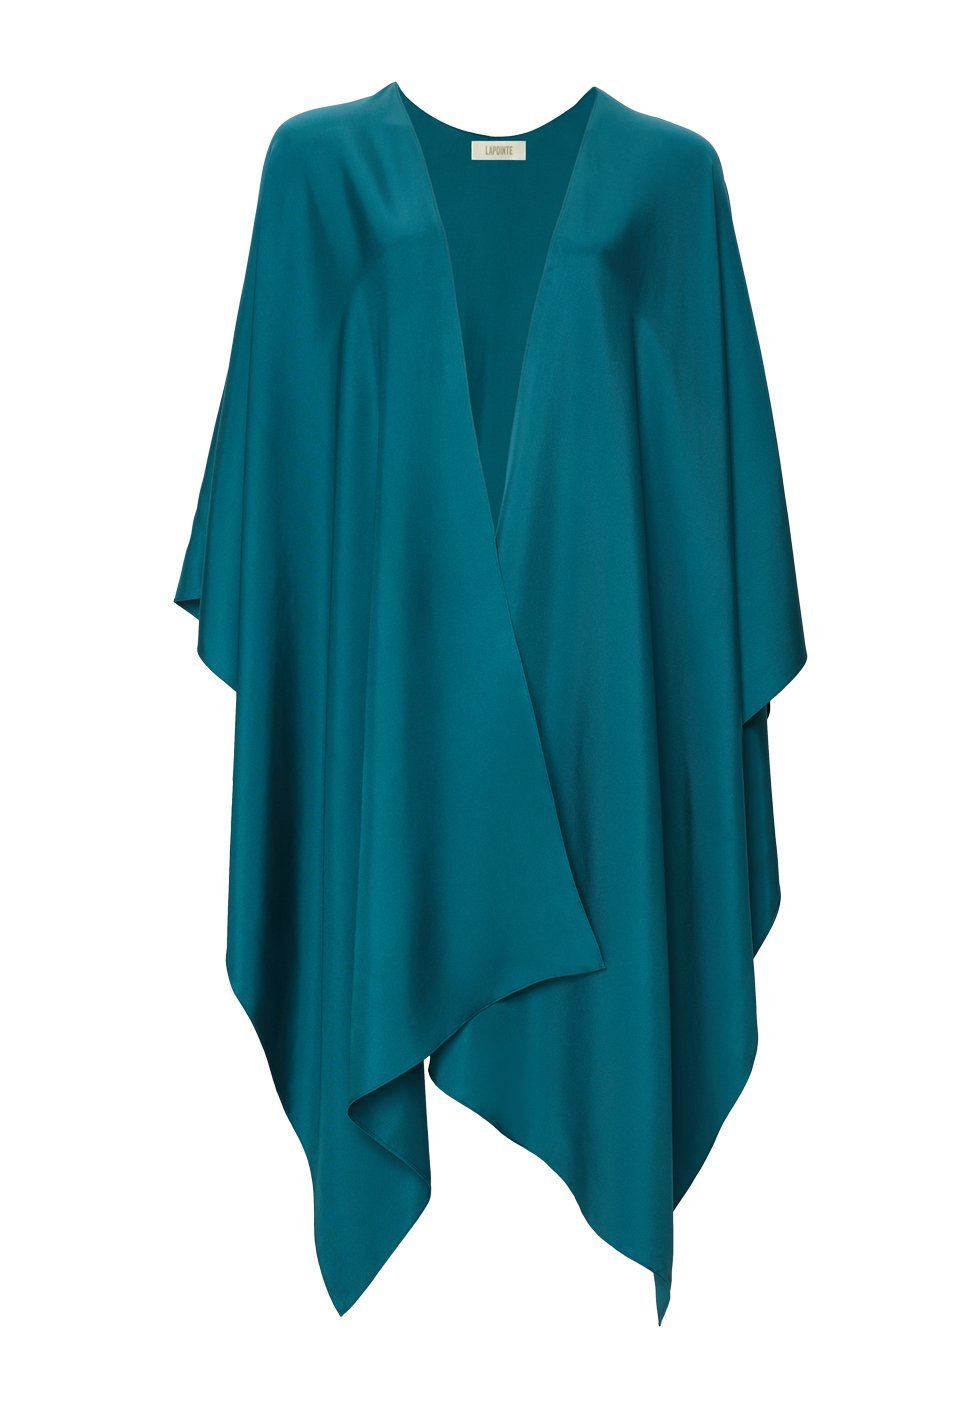 Product 4696795447382, SILKY TWILL CAPE - LAPOINTE